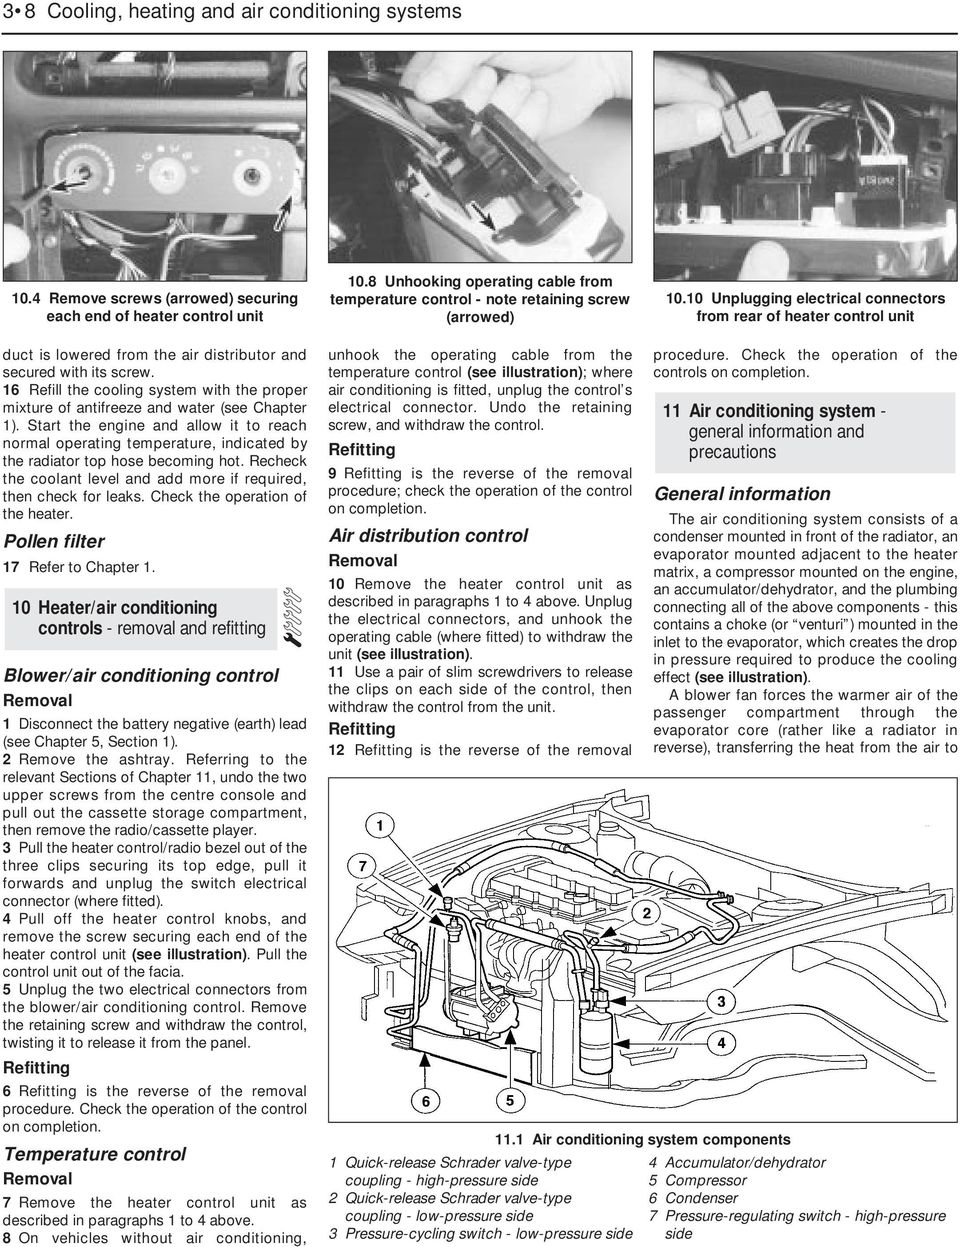 Chapter 3 Cooling, heating, and air conditioning systems - PDF